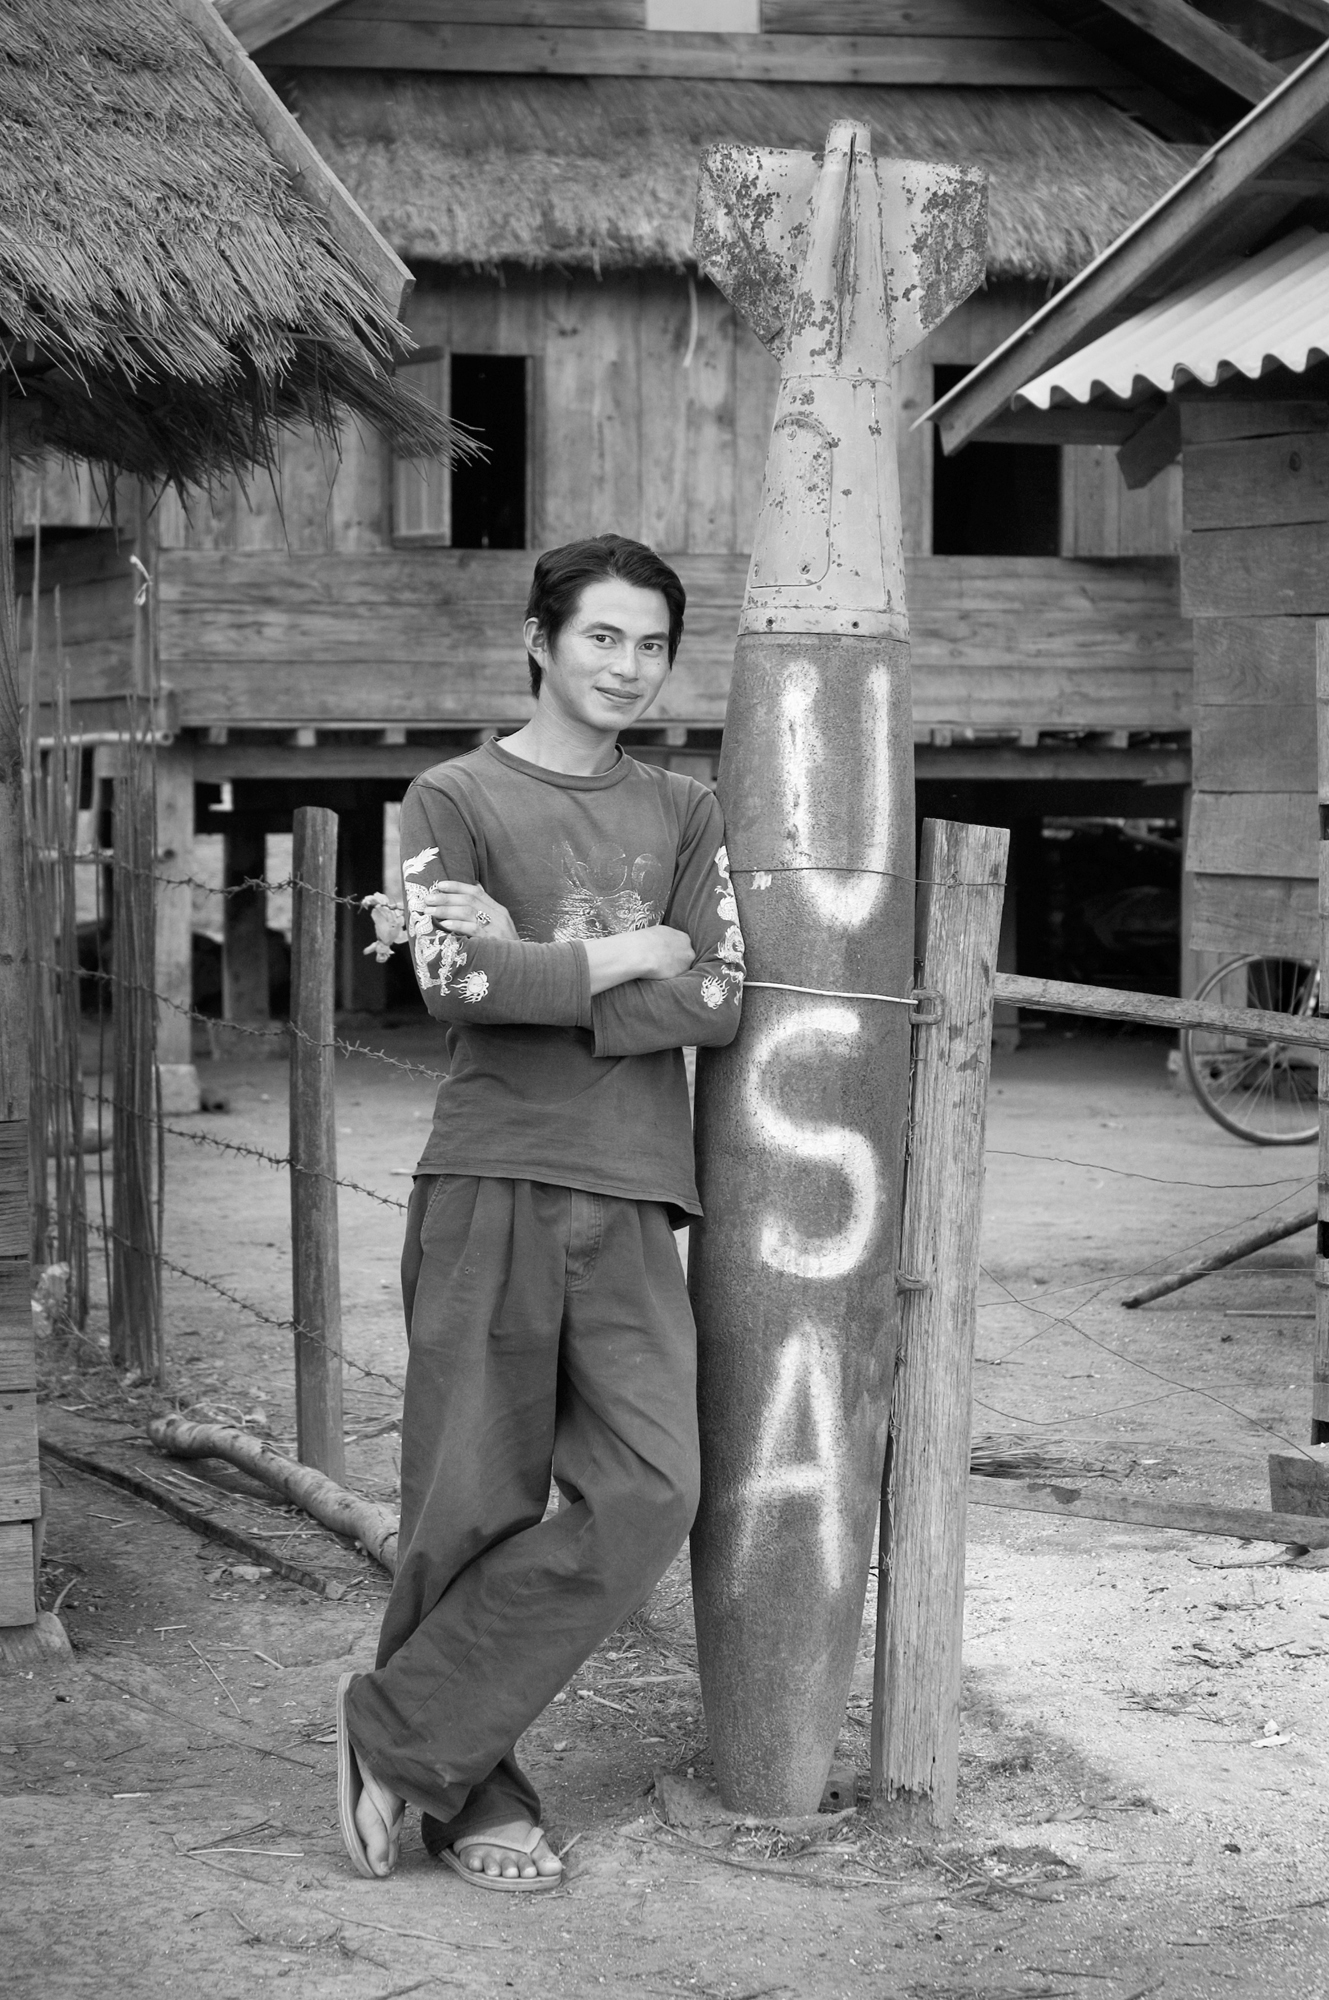 Sou Lin Phan poses next to a large dud bomb in the middle of his village in rural Xiengkhouang Province, Laos. Over several years in the late 60s and early 70s, the US dropped 4 billion pounds of explosives on northern Laos in a futile effort to stop North Vietnamese soldiers from using the area as a base and transshipment line to South Vietnam.